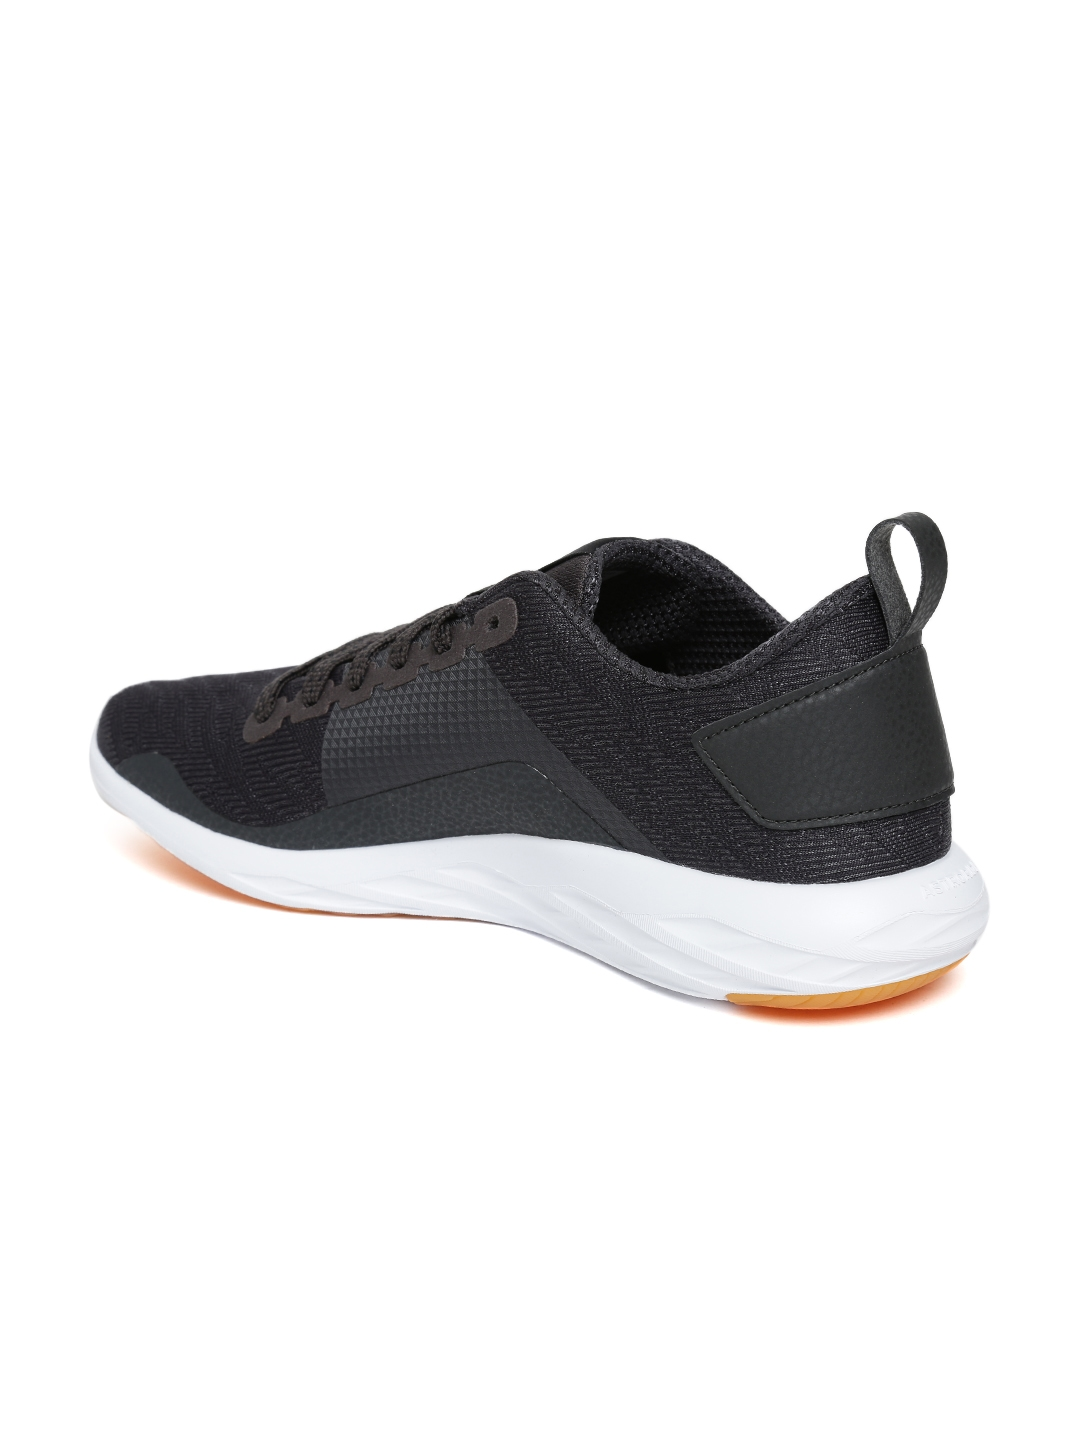 0d20af0ec65 Buy Reebok Women Charcoal Grey Astroride Walking Shoes - Sports ...